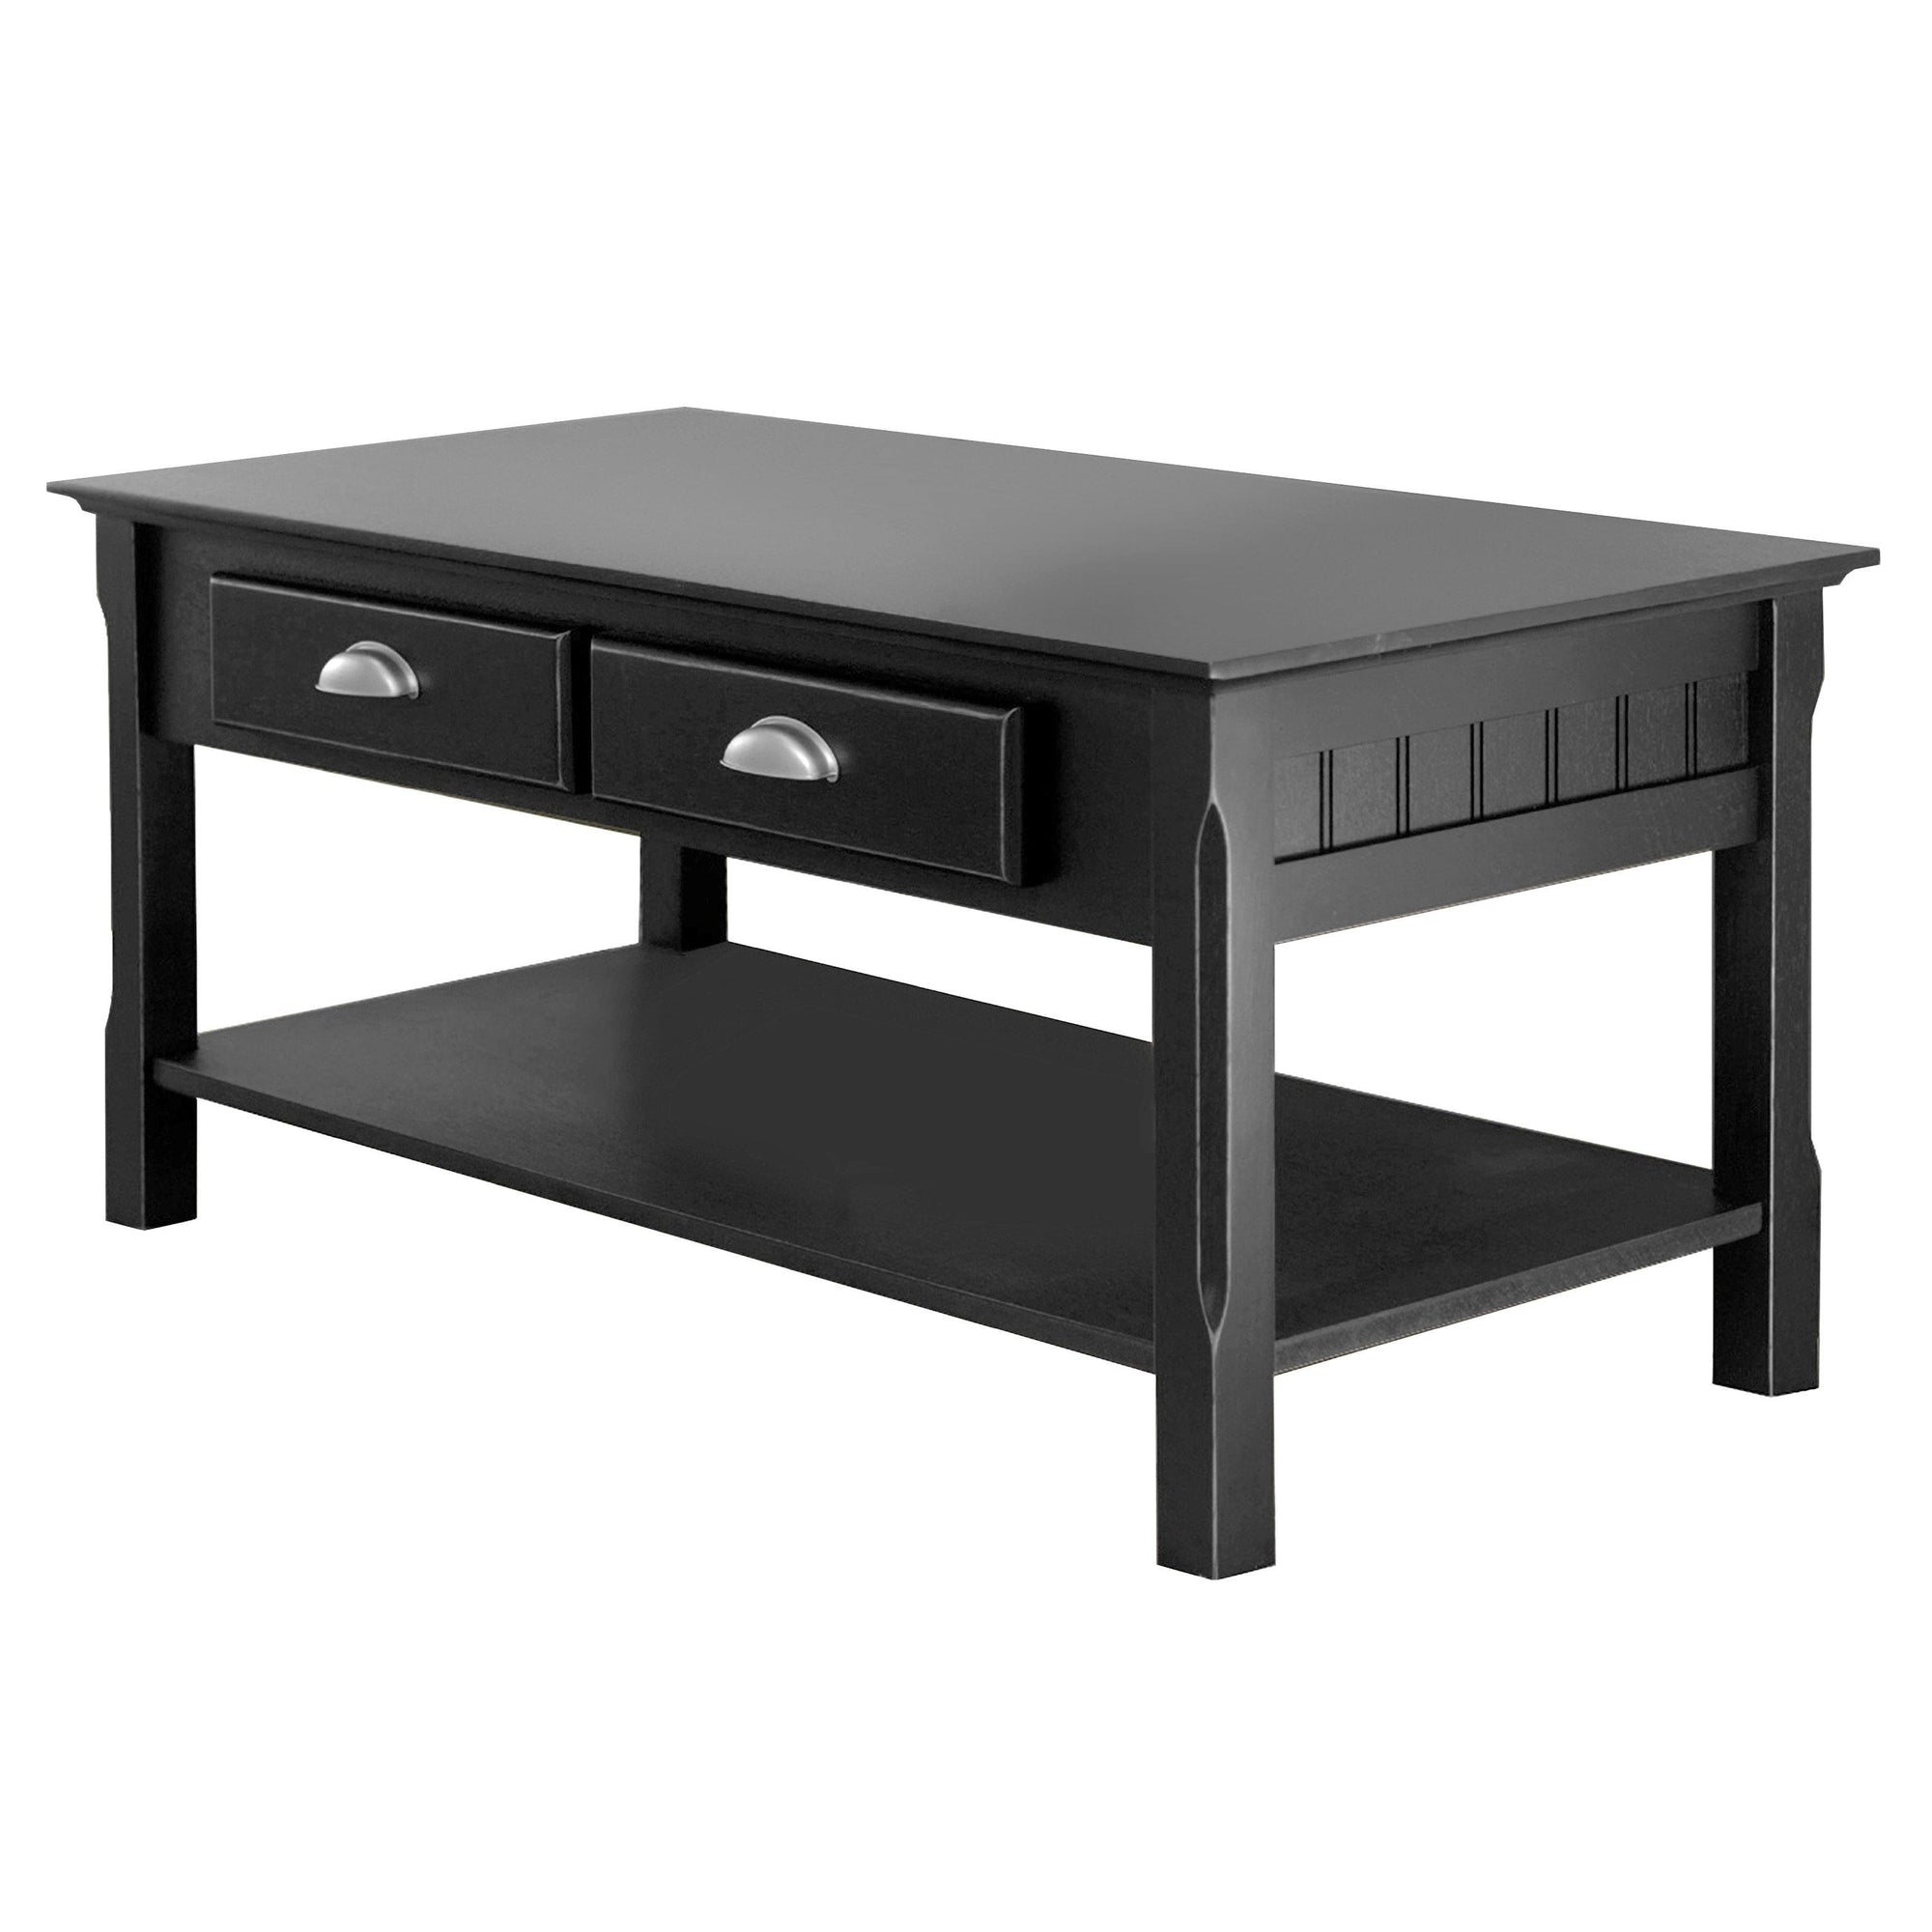 Timber Coffee Table with Drawers, Black - My USA Furniture